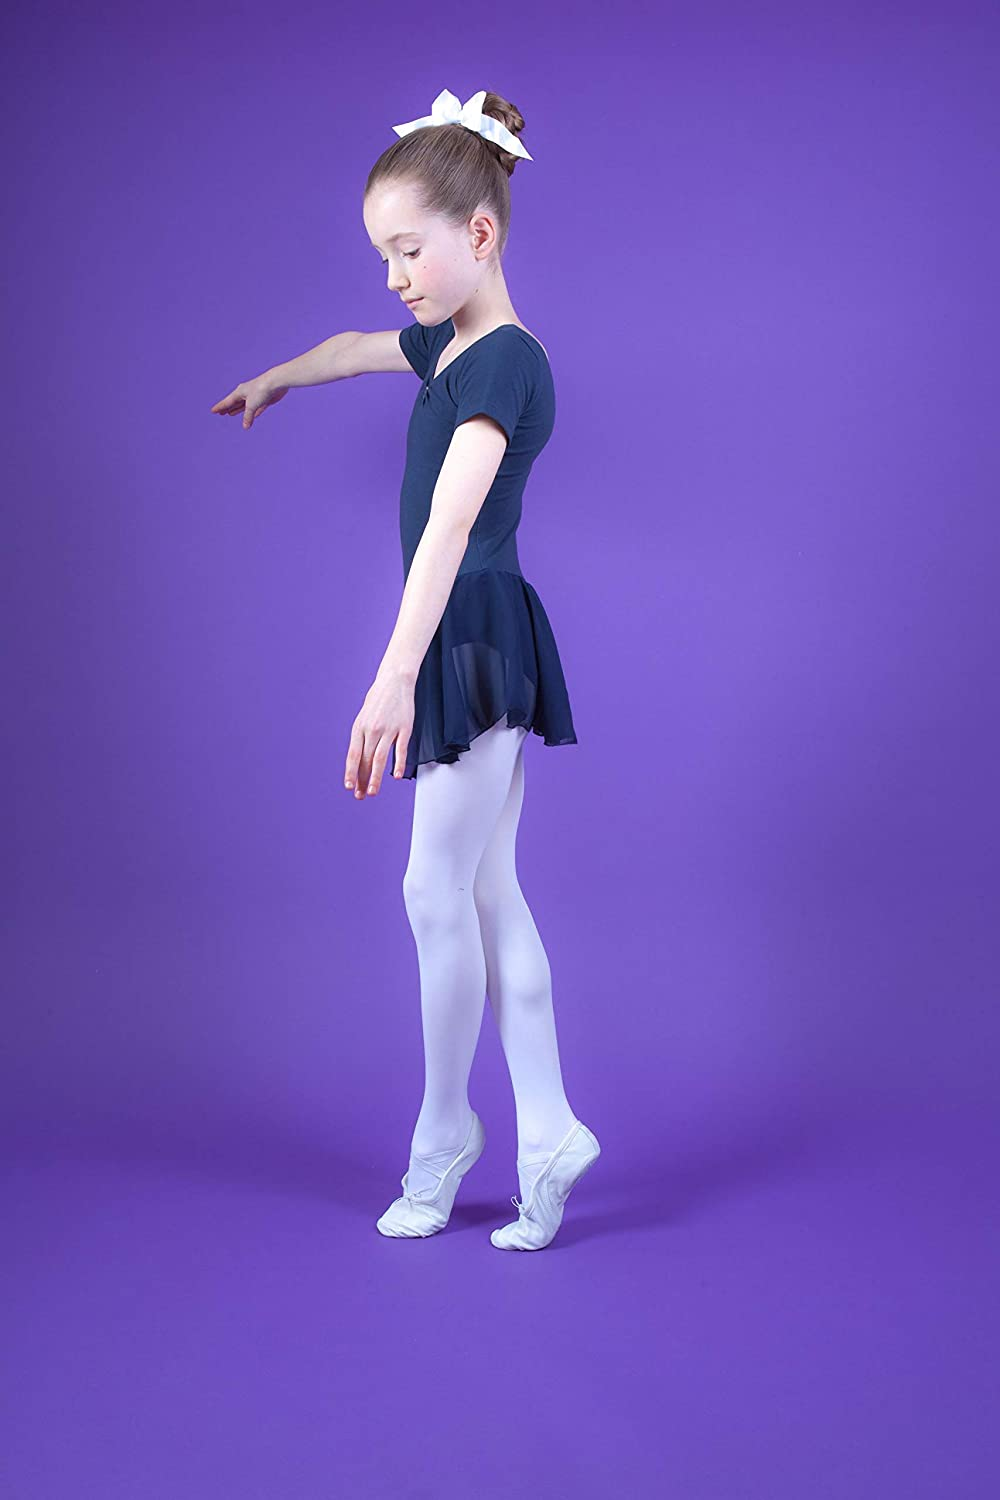 tanzmuster girls/´ short-sleeved ballet leotard Betty with chiffon skirt and rhinestones beautiful dance dress for children in many colors made of soft and durable cotton blend